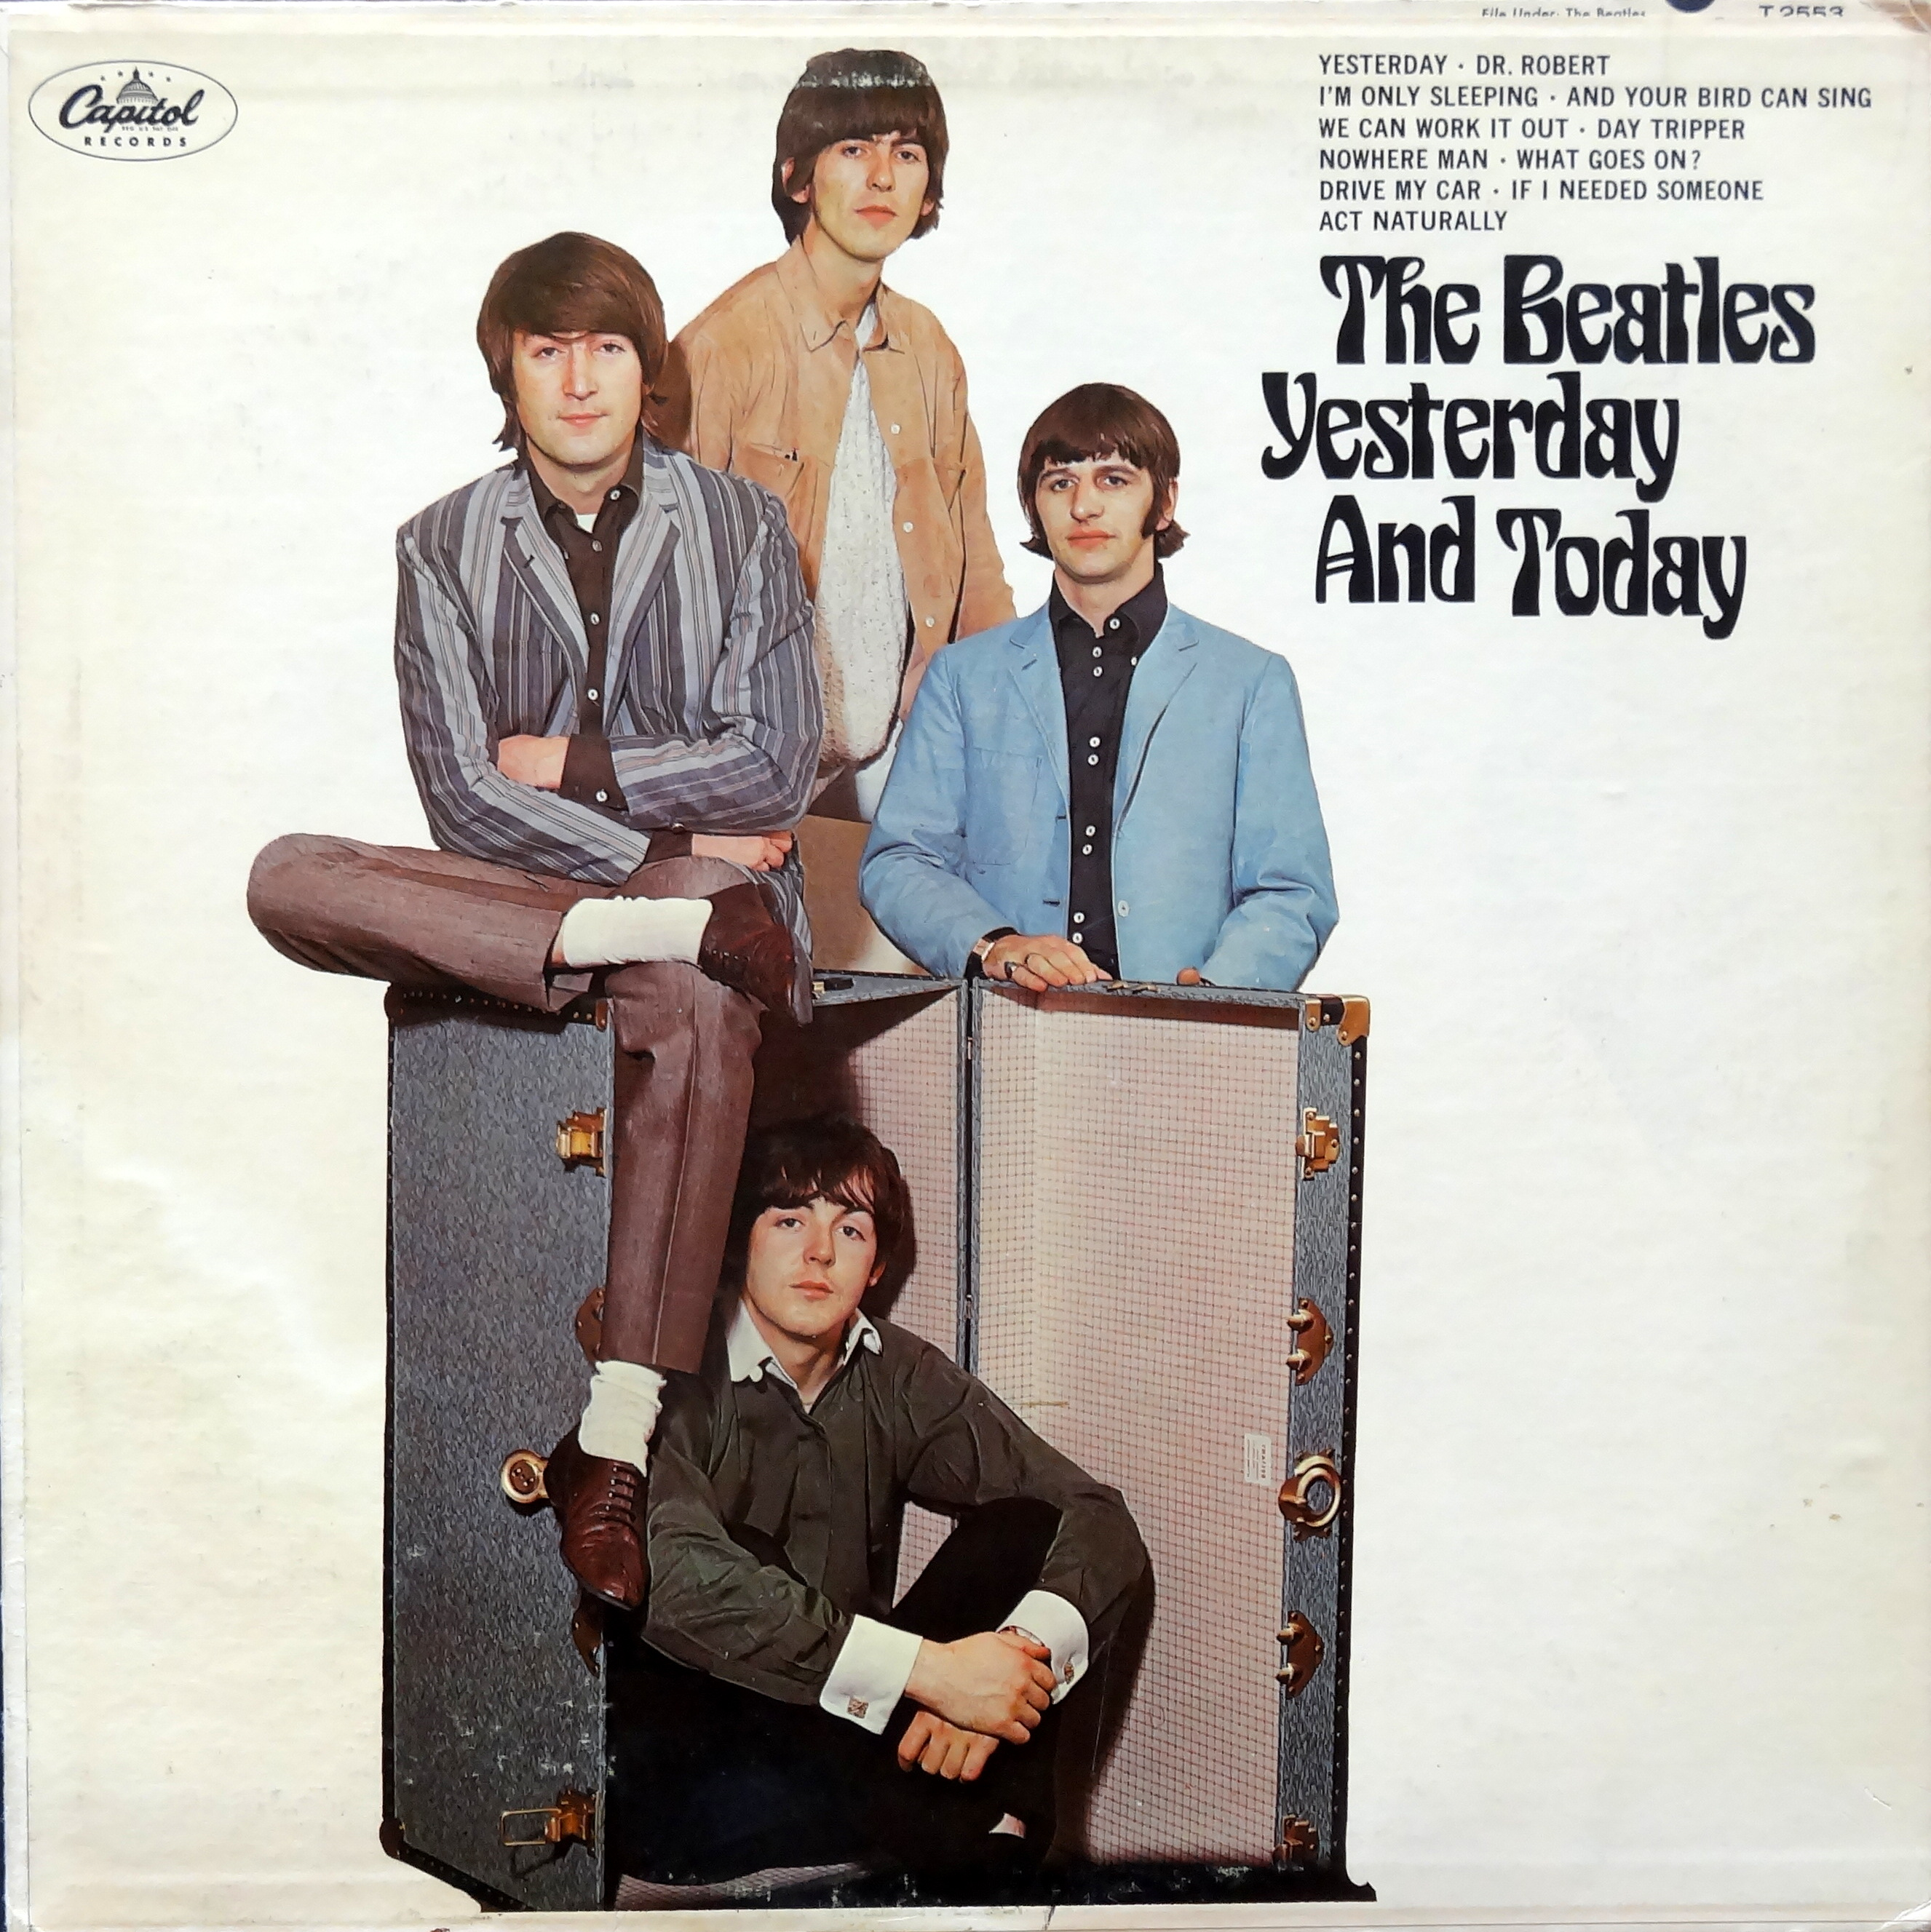 beatles-yesterday-and-today-buona